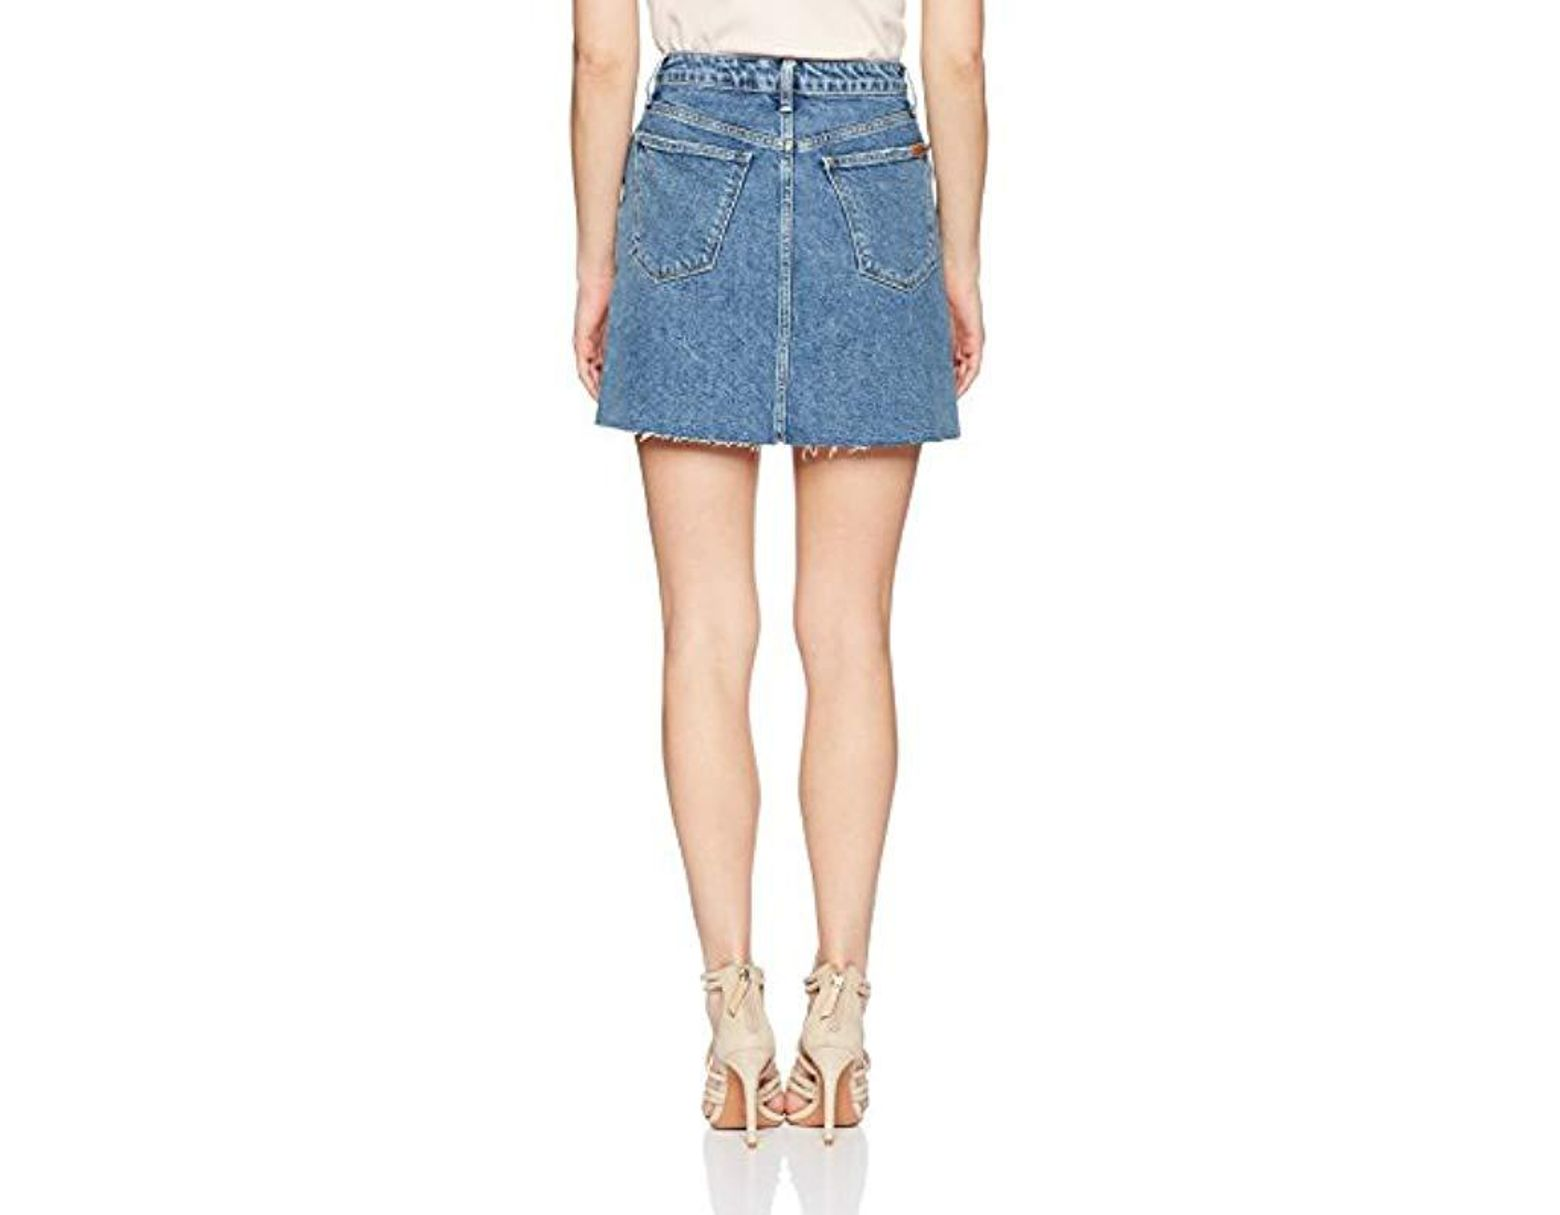 8a209fb6c0 Joe's Jeans Bella High Rise Jean Skirt in Blue - Save 64% - Lyst